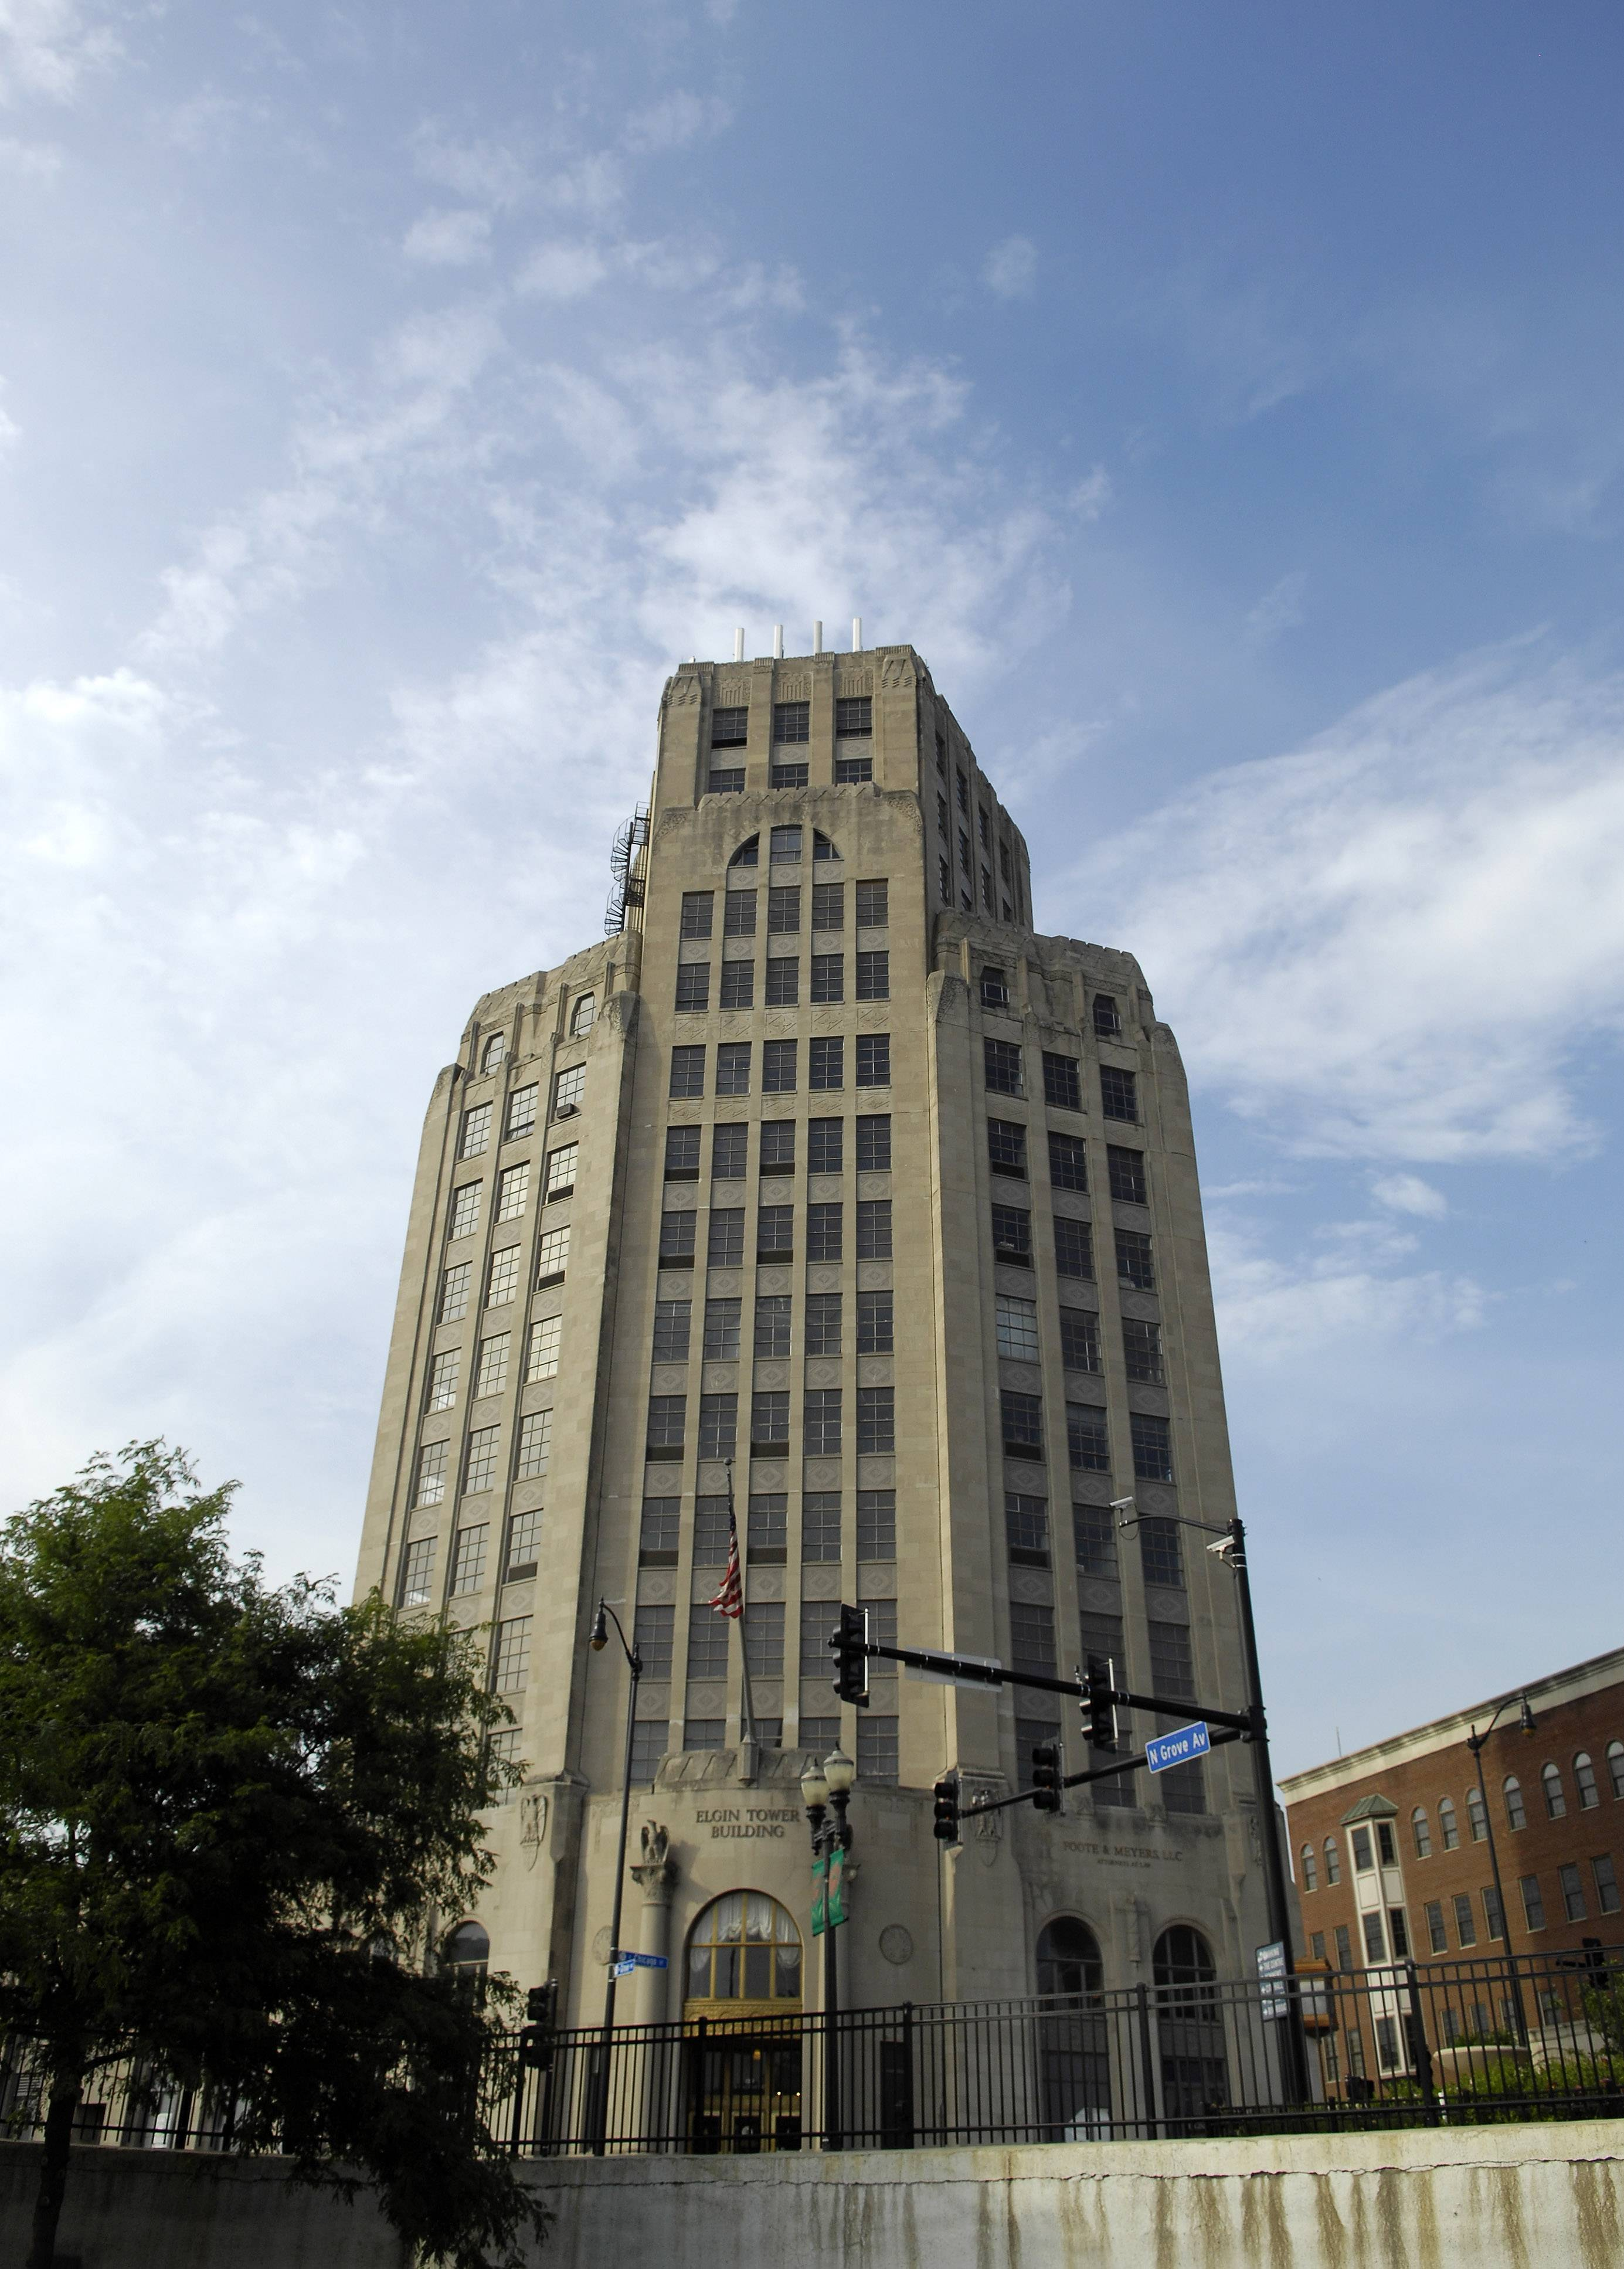 Chicago-based developer Richard Souyoul and Capstone Development Group of St. Louis want to gut-rehab the Elgin Tower Building and turn it into one- and two-bedroom apartments.